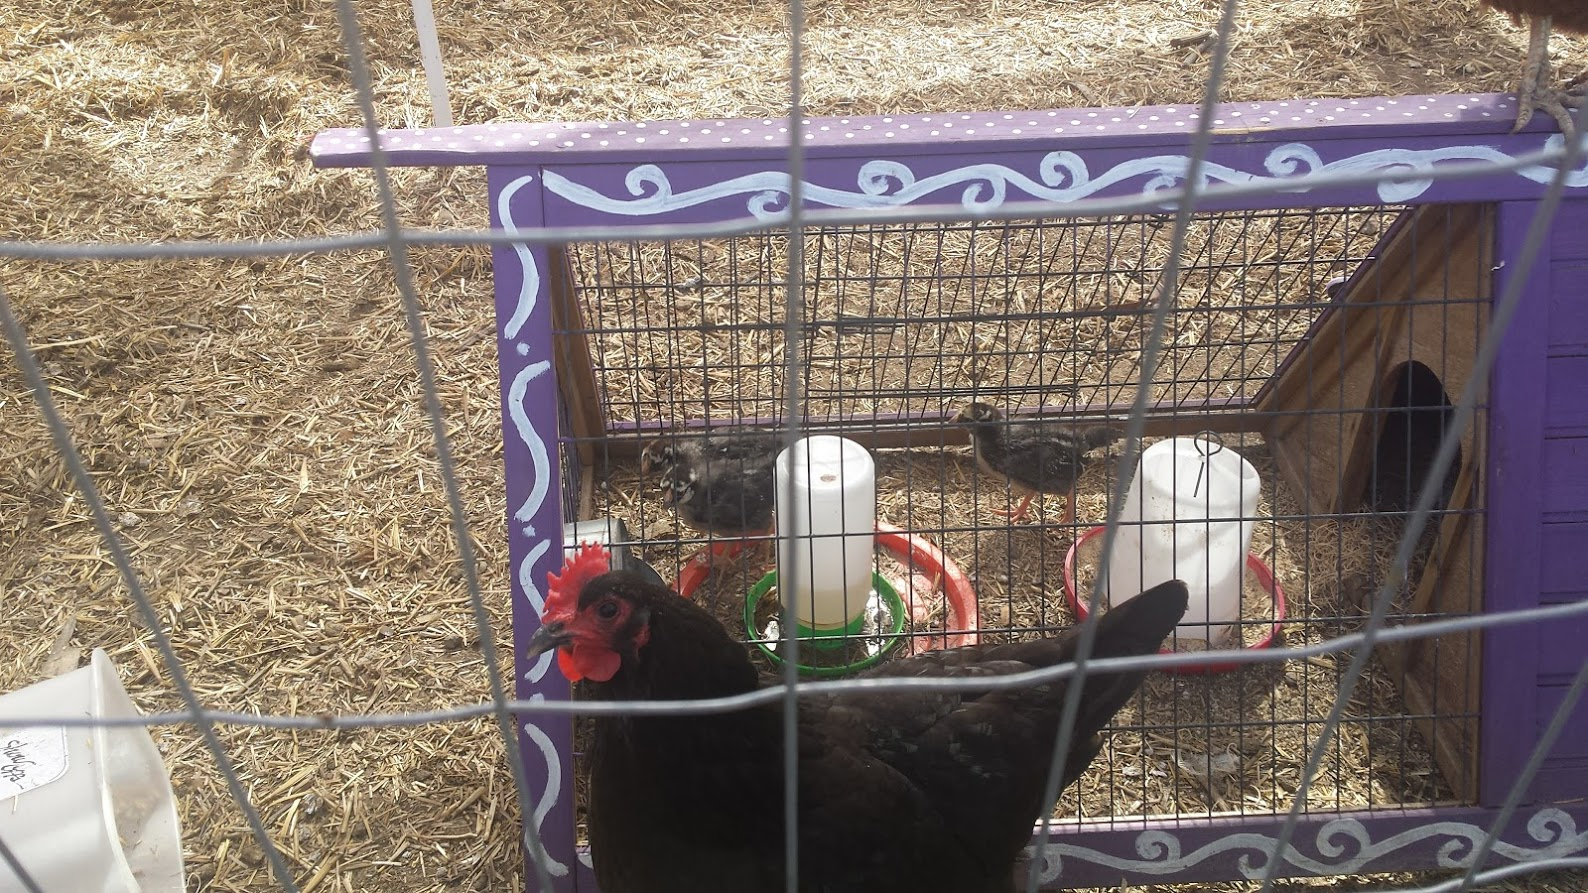 We have chickens!